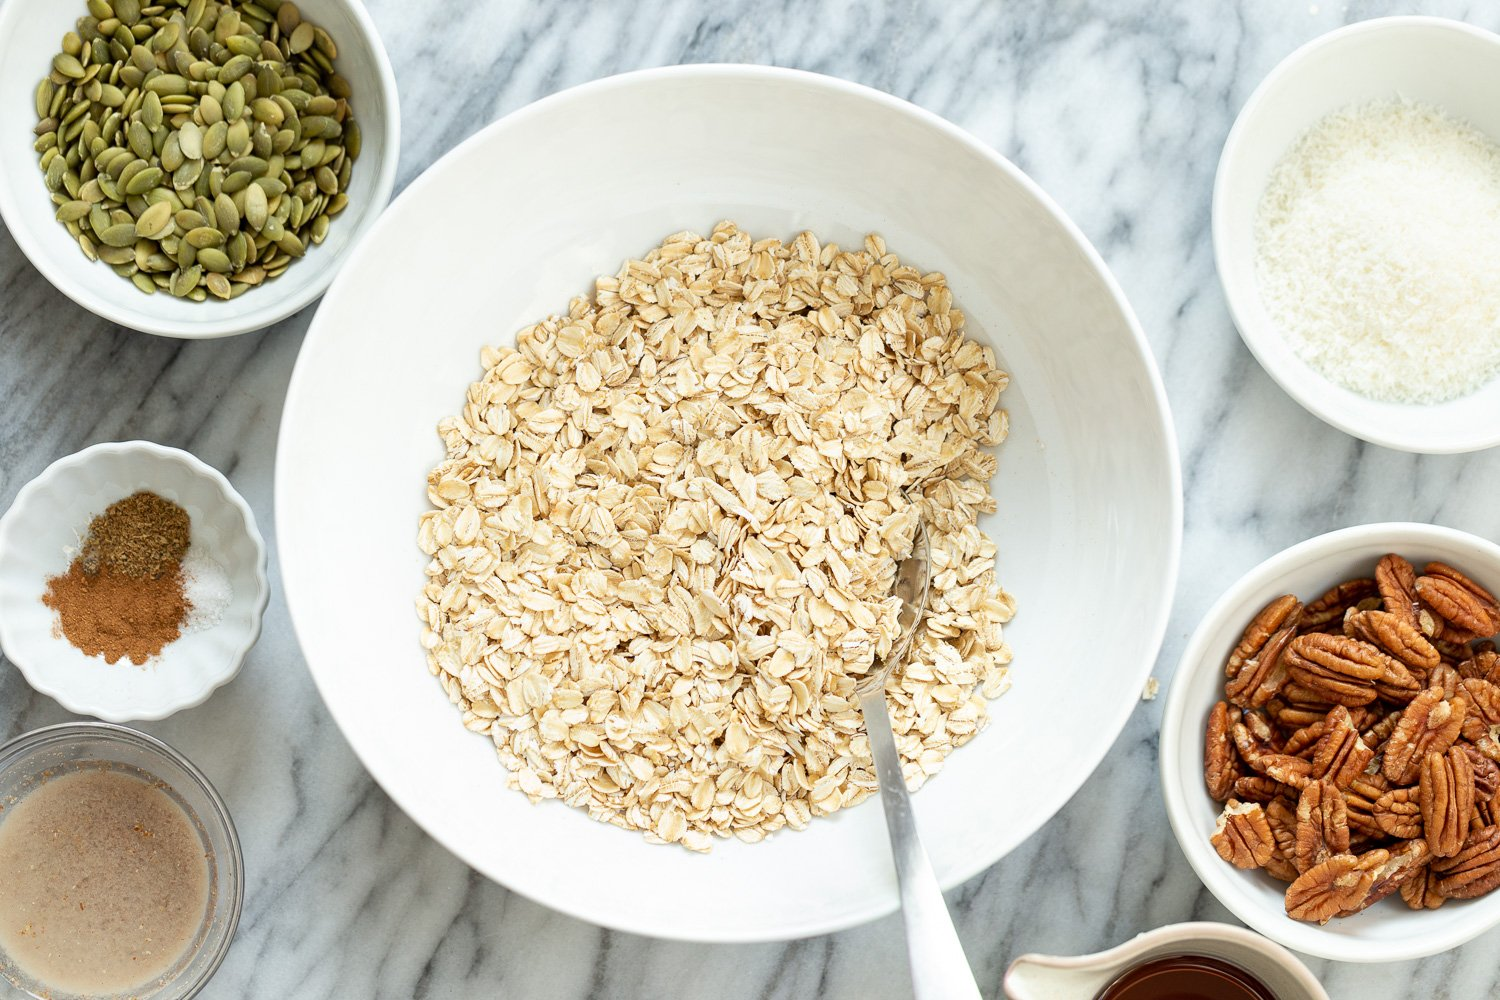 Ingredients for our Maple Pecan Granola in Bowls